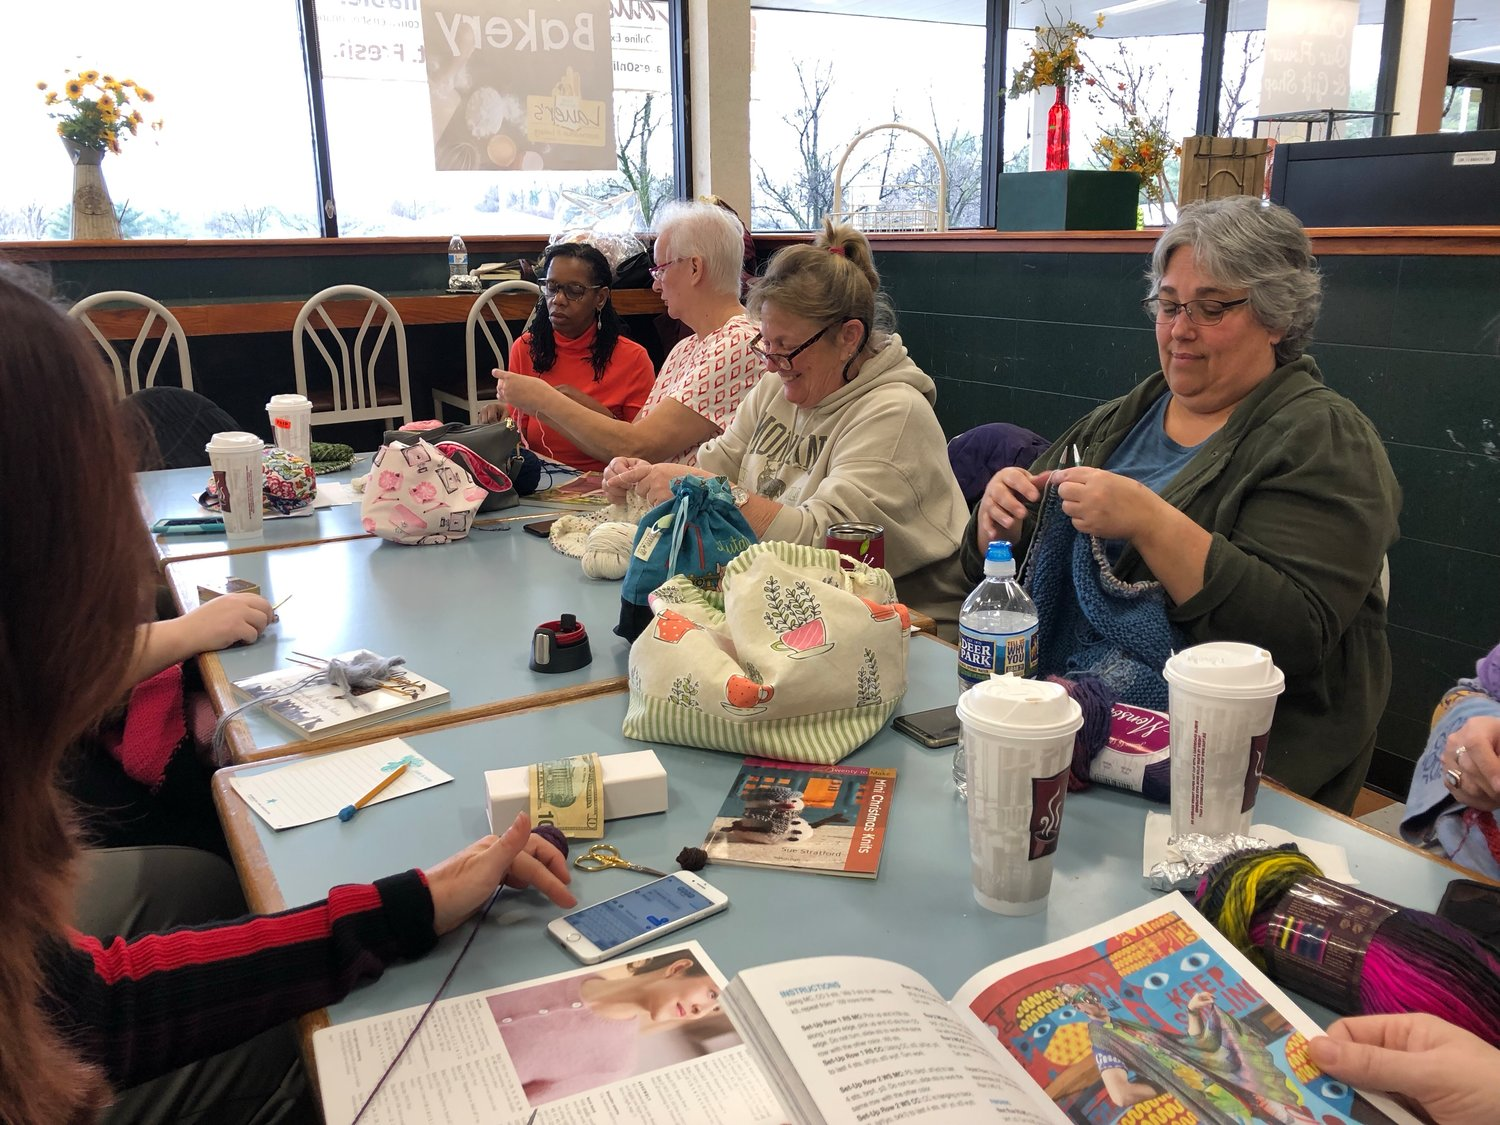 The Sit & Stitchers often take on projects where the knitters will all knit the same thing, such as the exact hat or sweater. Some members make hats, blanket squares or blankets for charities.